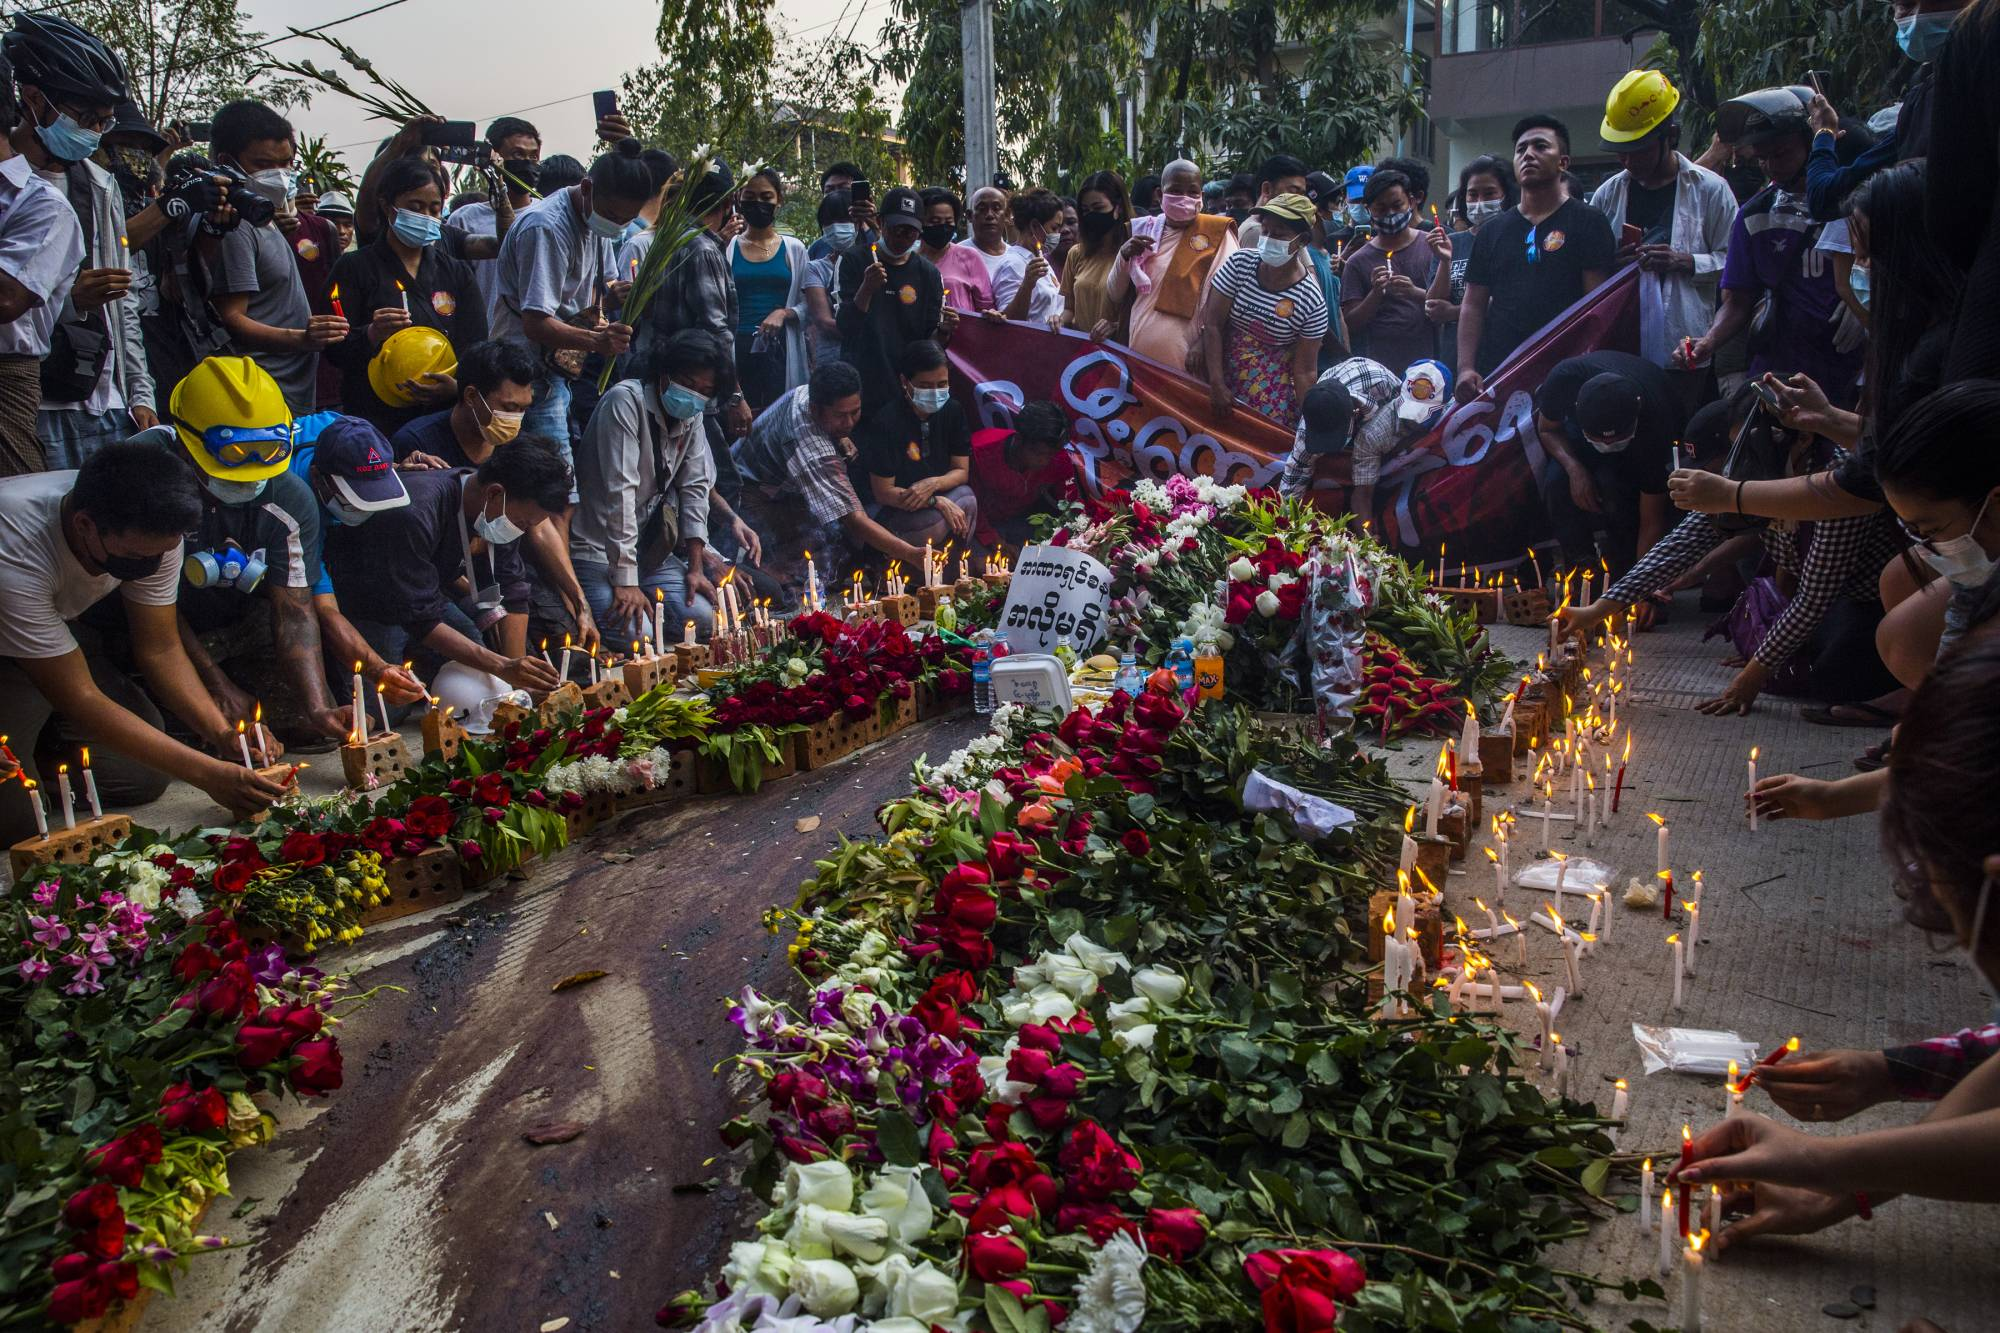 People lay down flowers and light candles at the site where Ko Chit Min Thu, who was shot in the head and killed by security forces while protesting the military coup in North Dagon township in Yangon, Myanmar, on Thursday. | THE NEW YORK TIMES